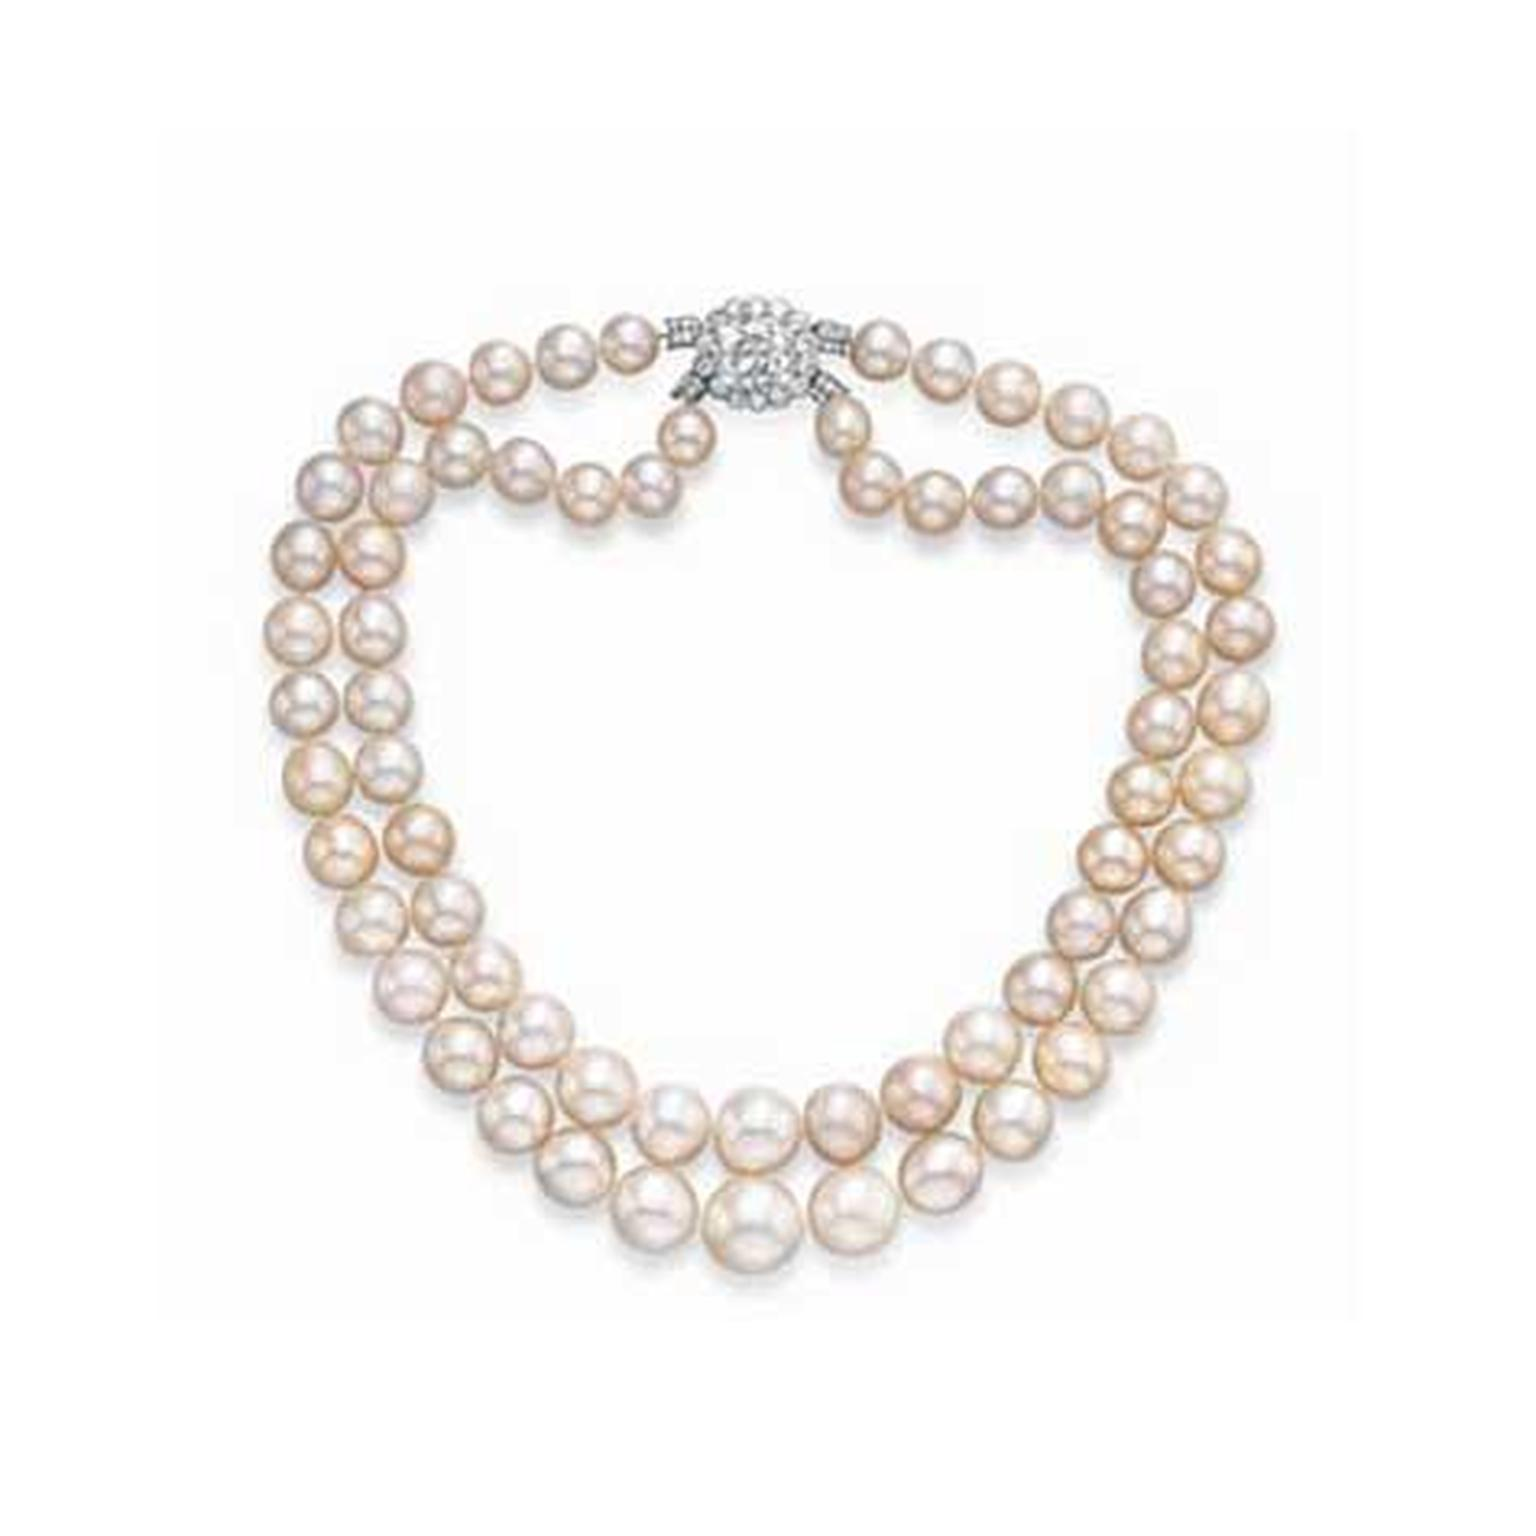 Baroda natural pearl necklace